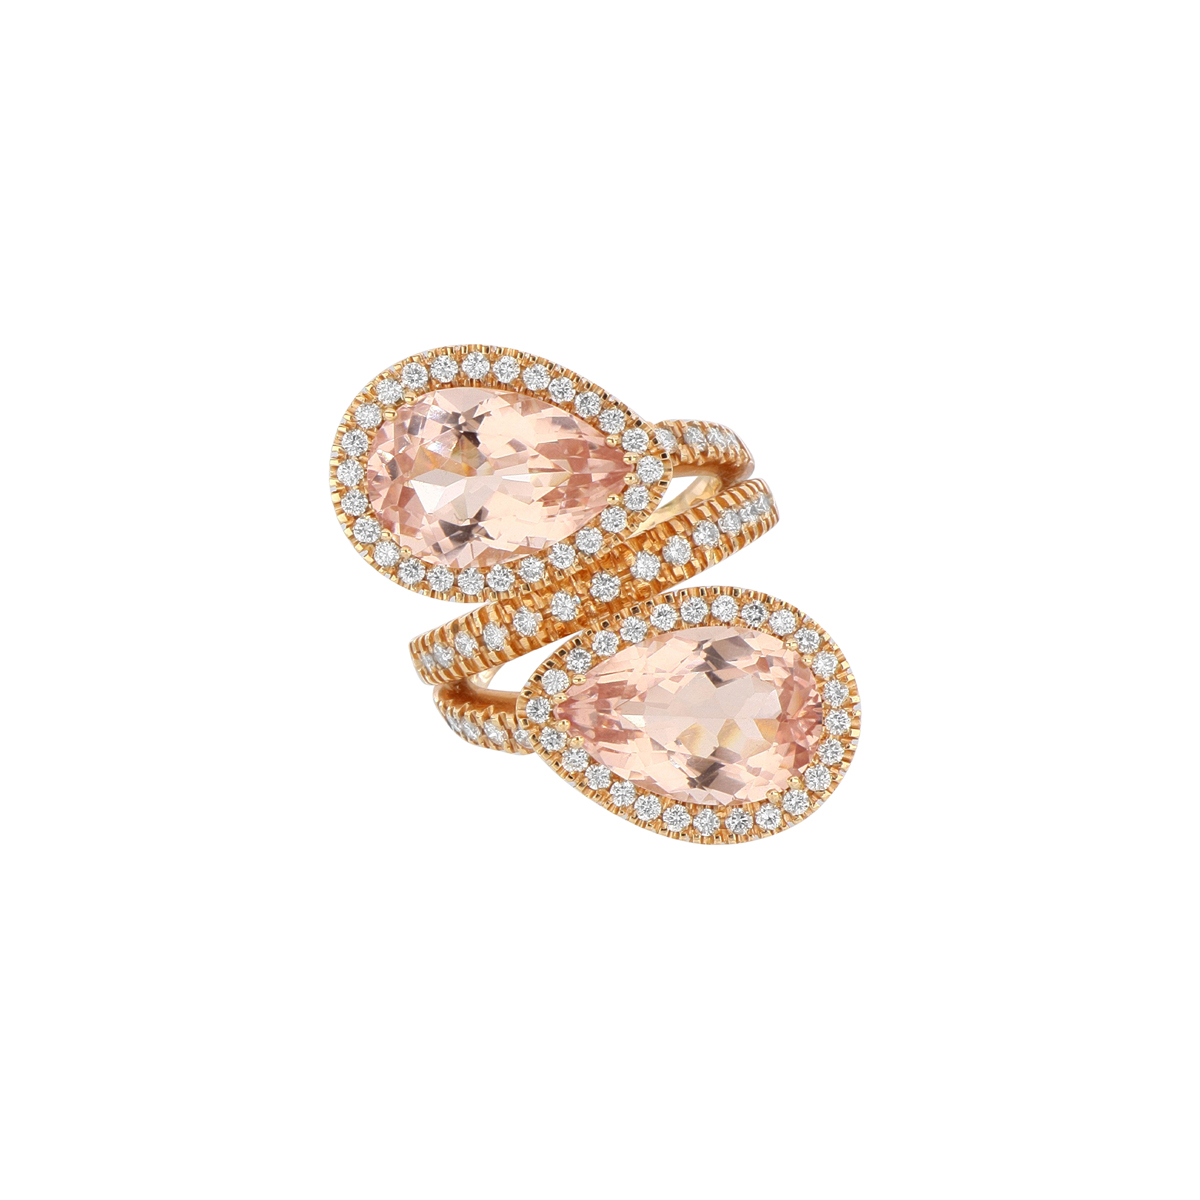 Pear-Cut Tourmaline Bypass Ring with Diamonds